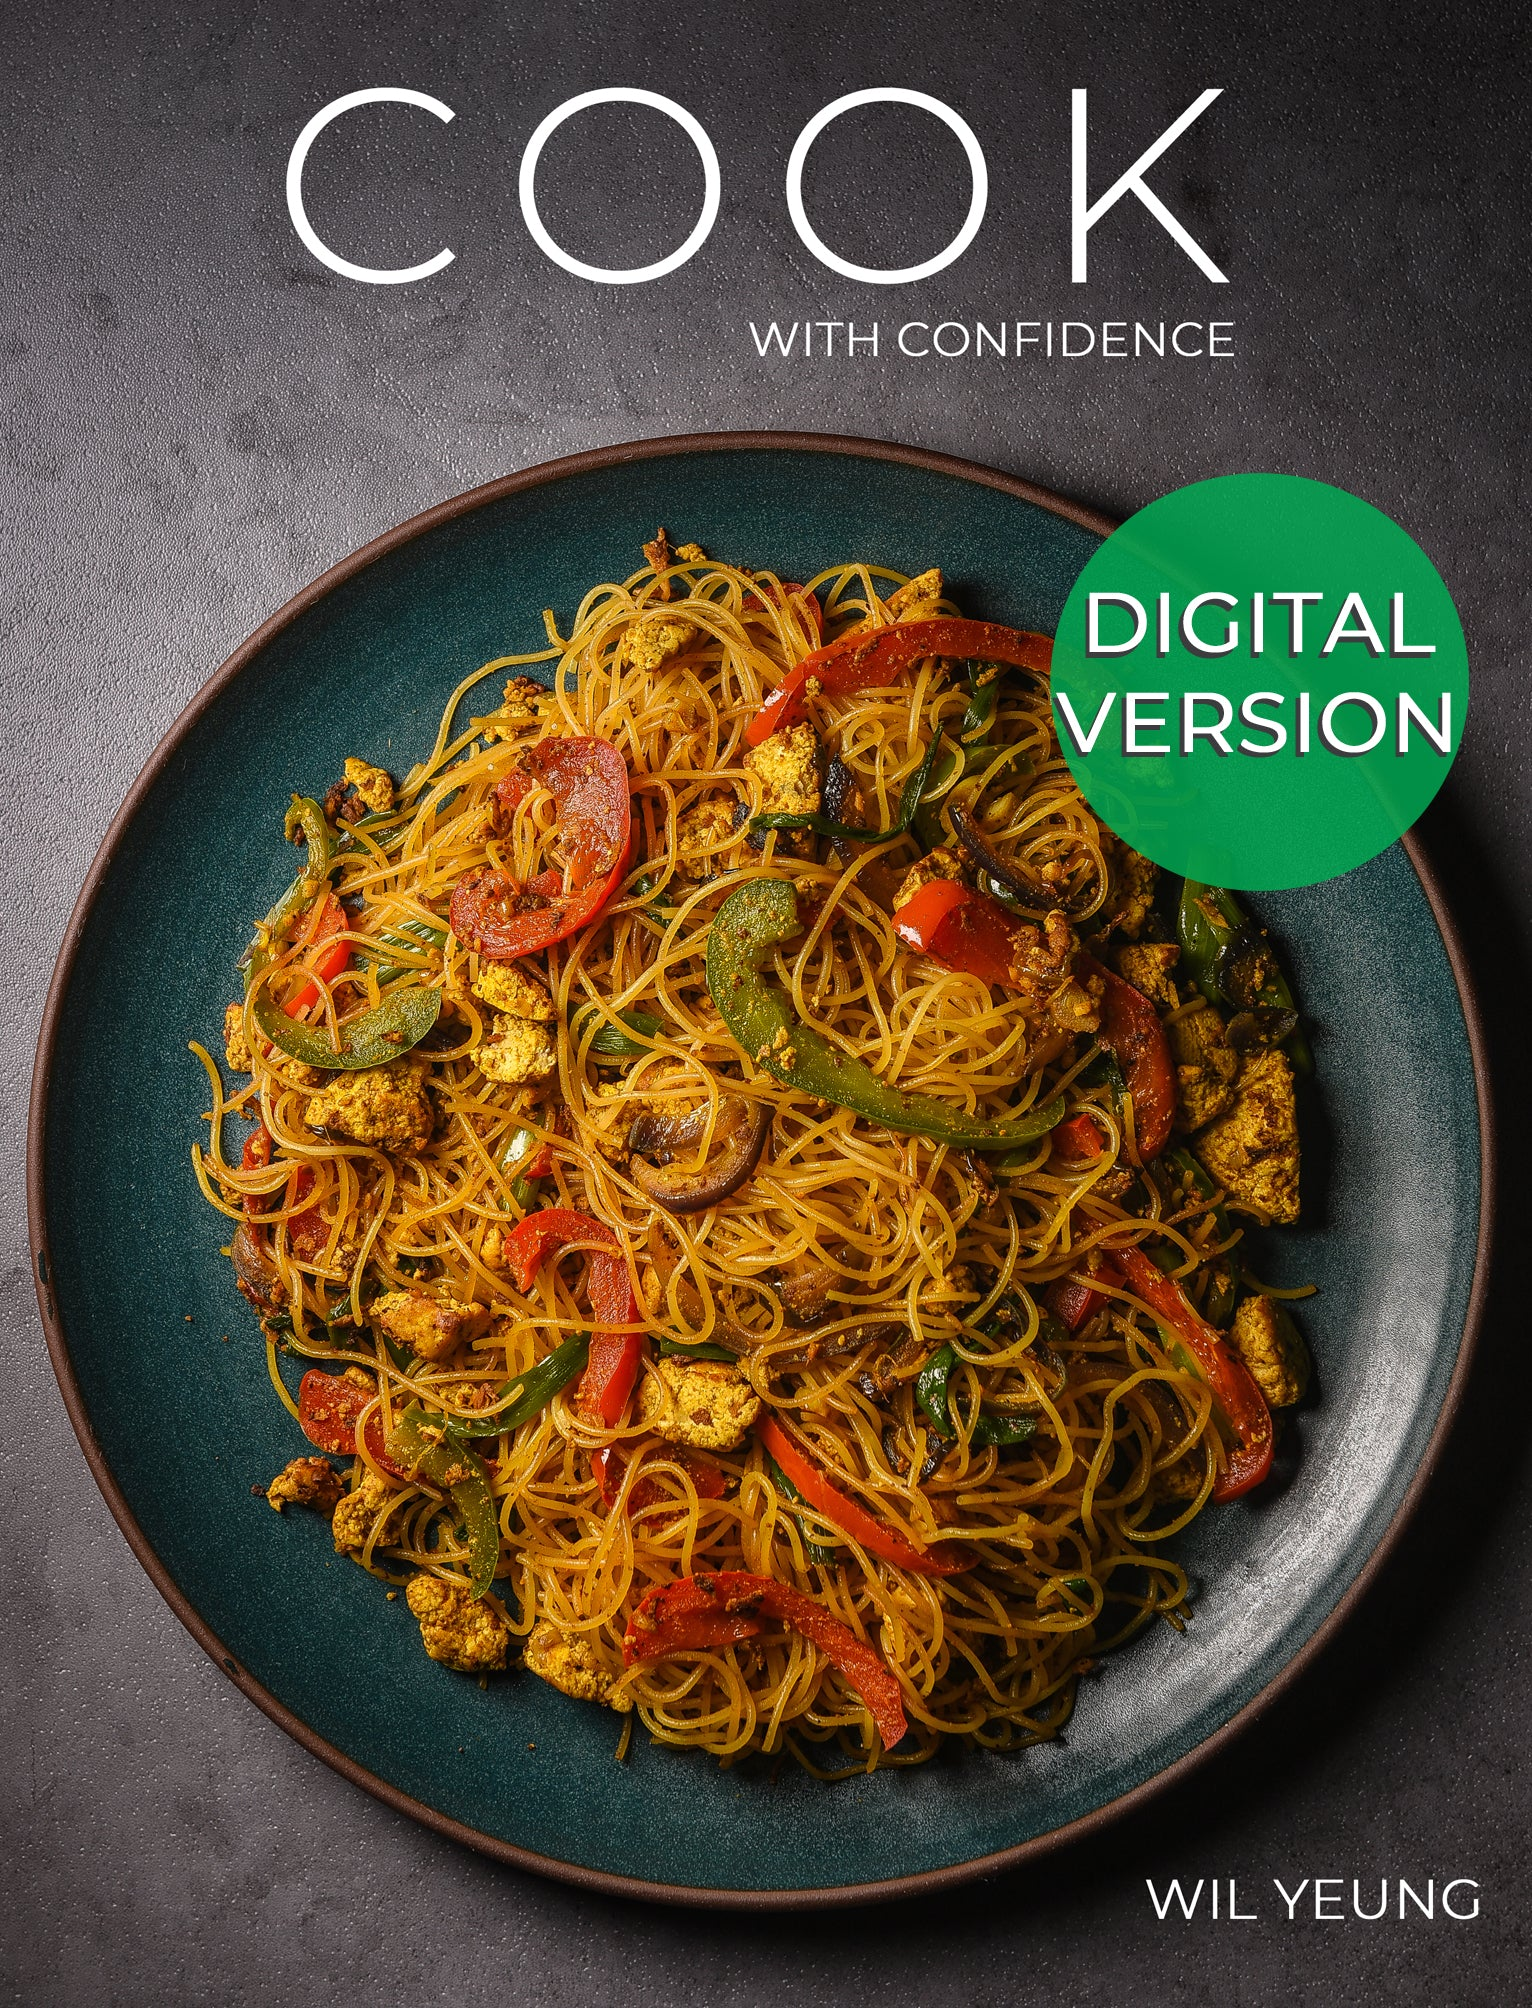 DIGITAL EBOOK - COOK WITH CONFIDENCE